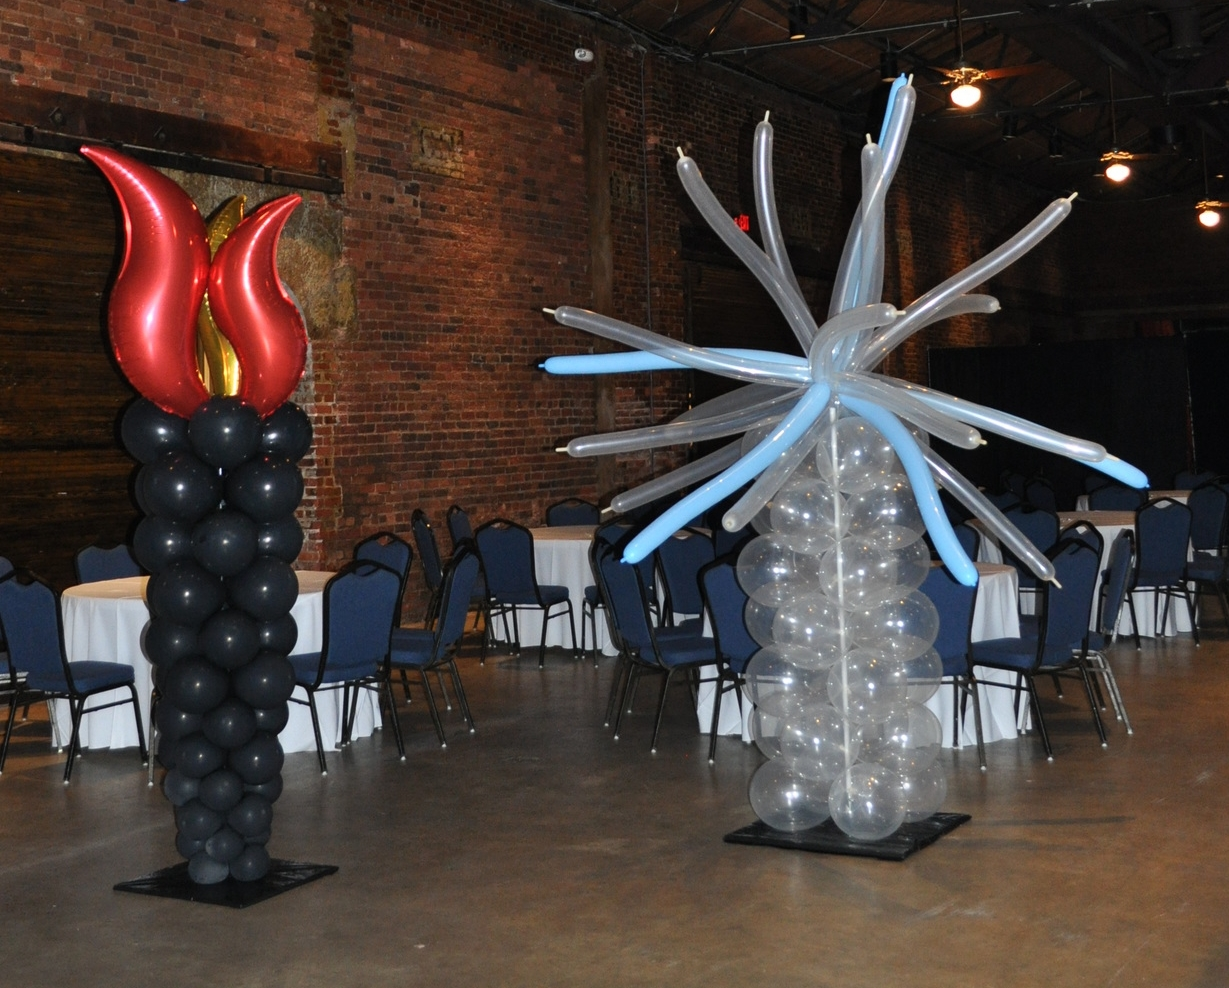 Fire and ice themed prom balloon columns